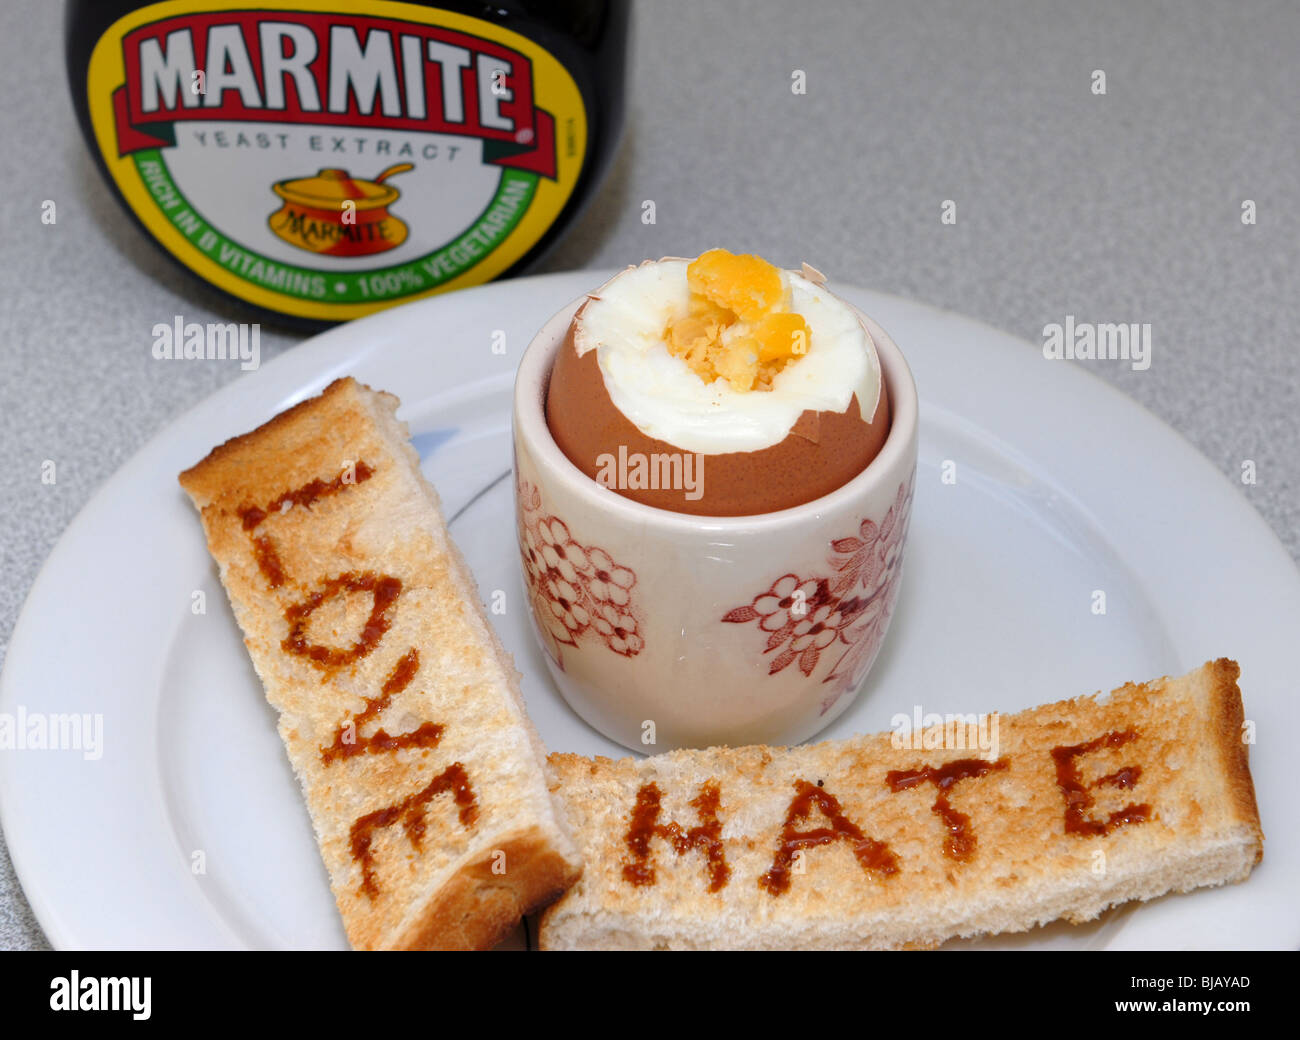 Generic image of Marmite with Love and Hate written on toast.  A Unilever Brand guaranteed to cause arguments. - Stock Image